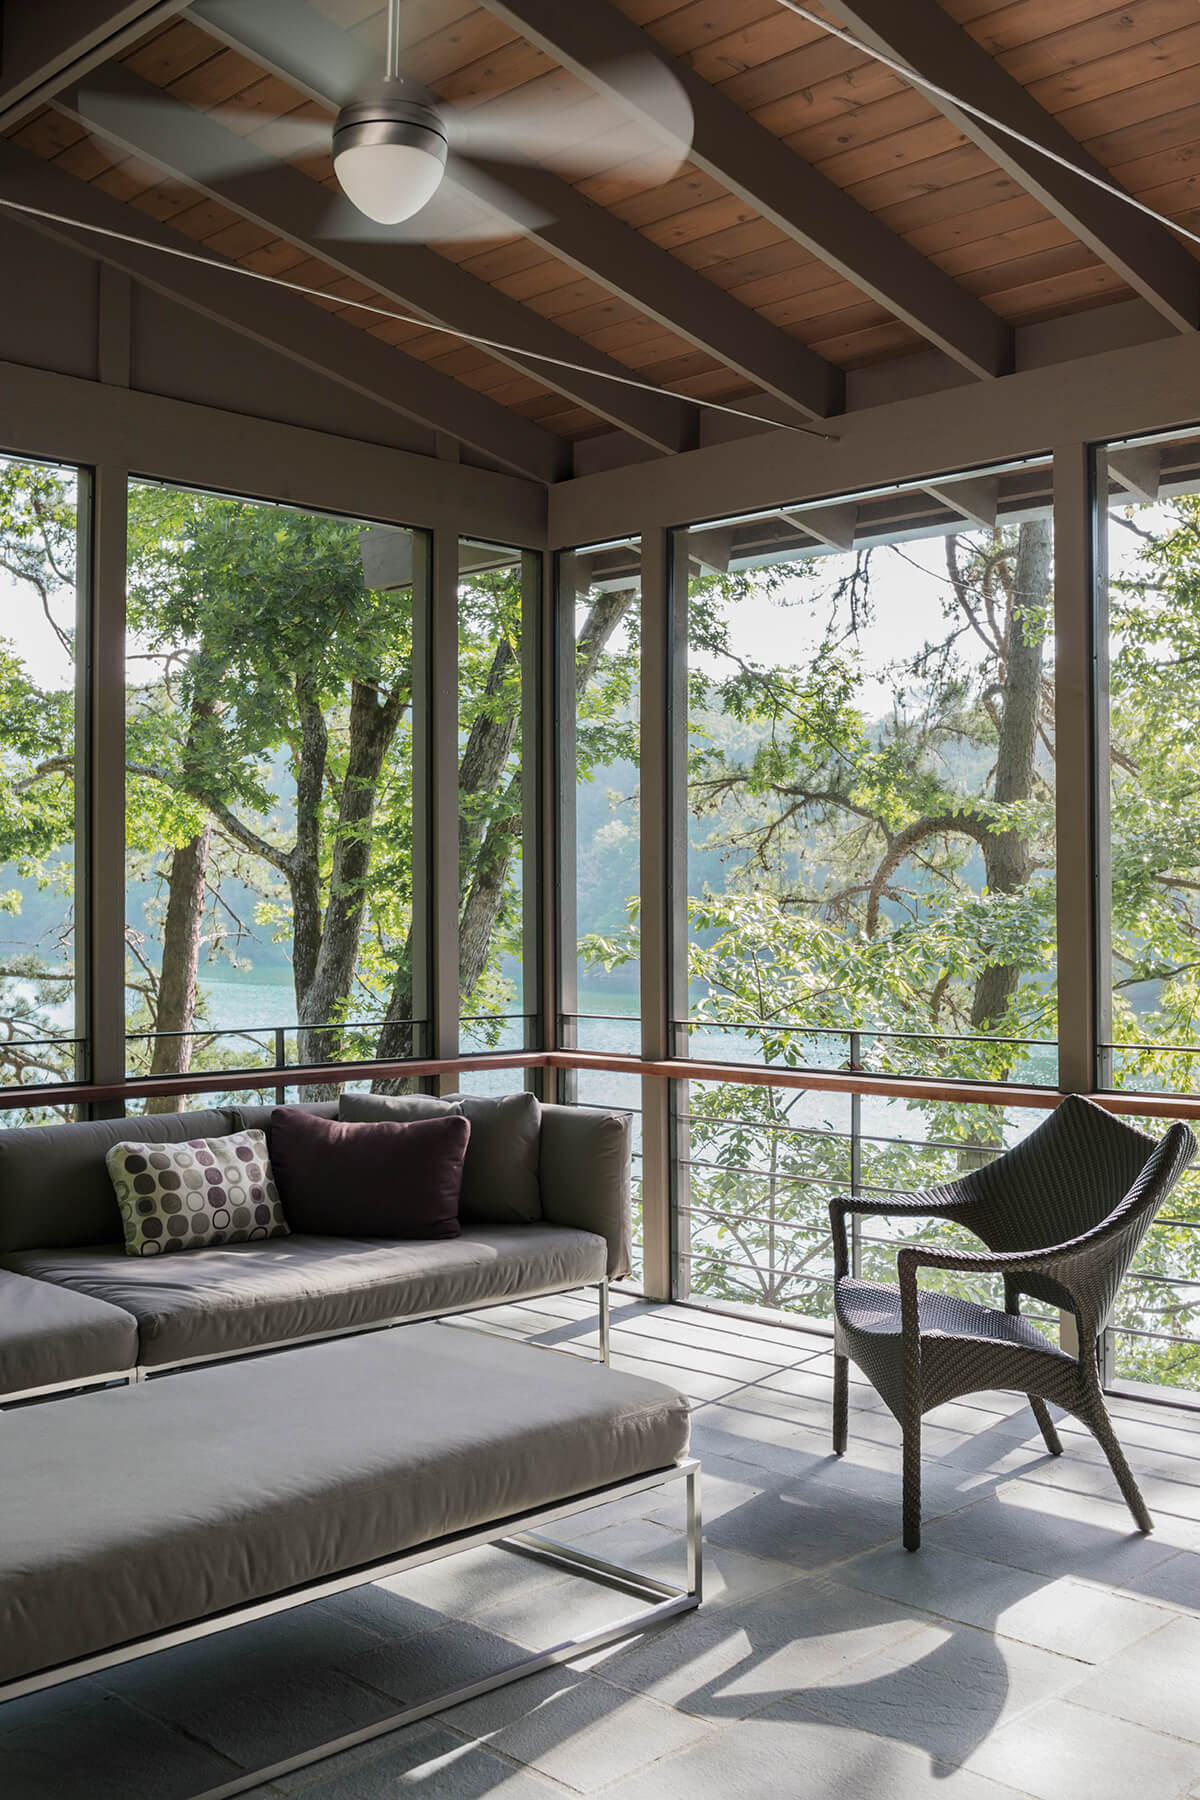 Fontana Lake House modern architectural residential design project